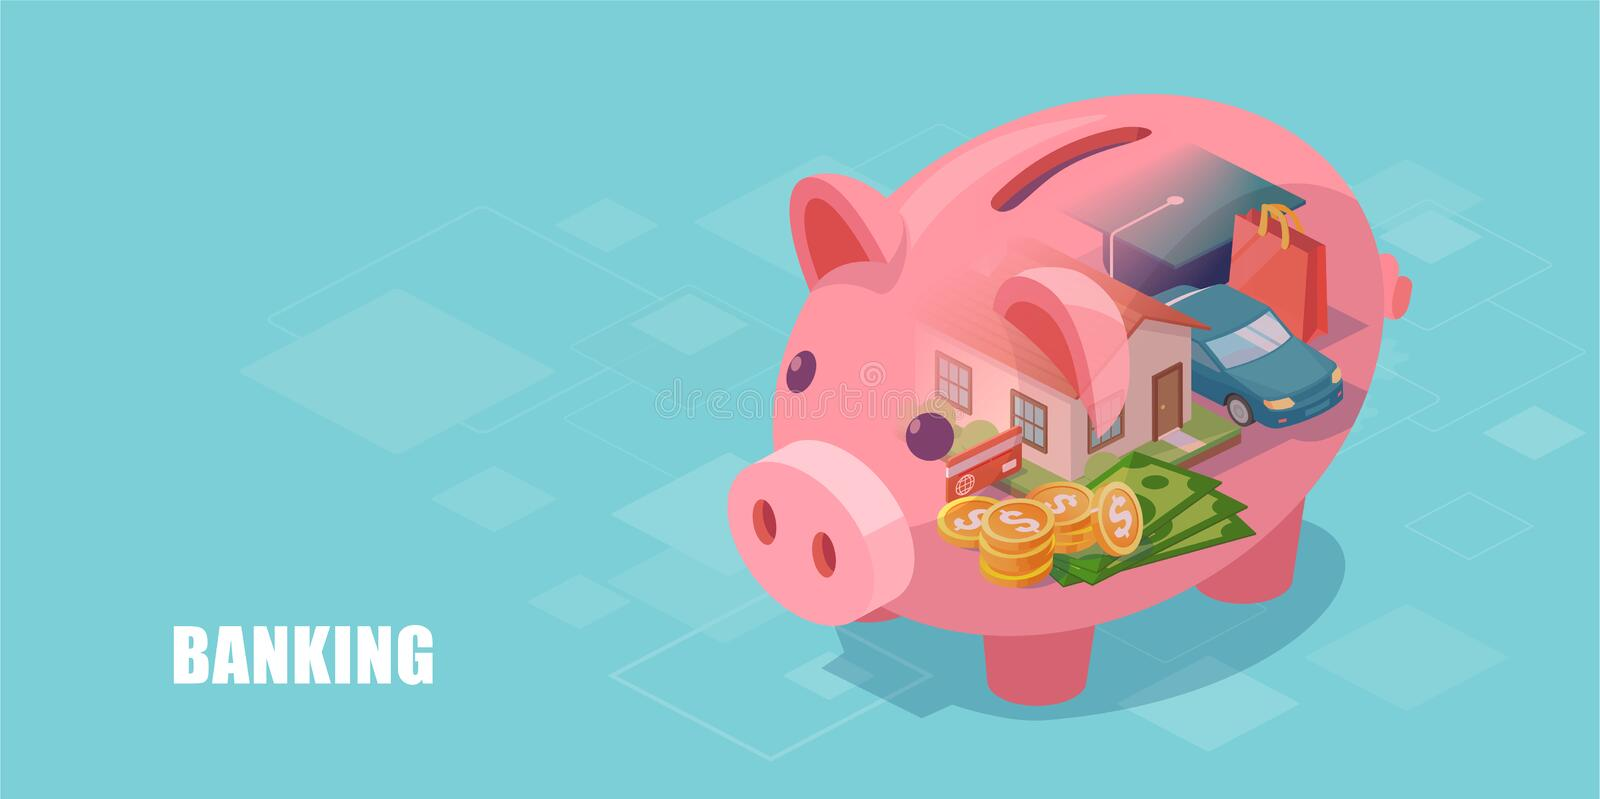 Piggy bank with dream home, car, education loan and cash savings inside vector illustration